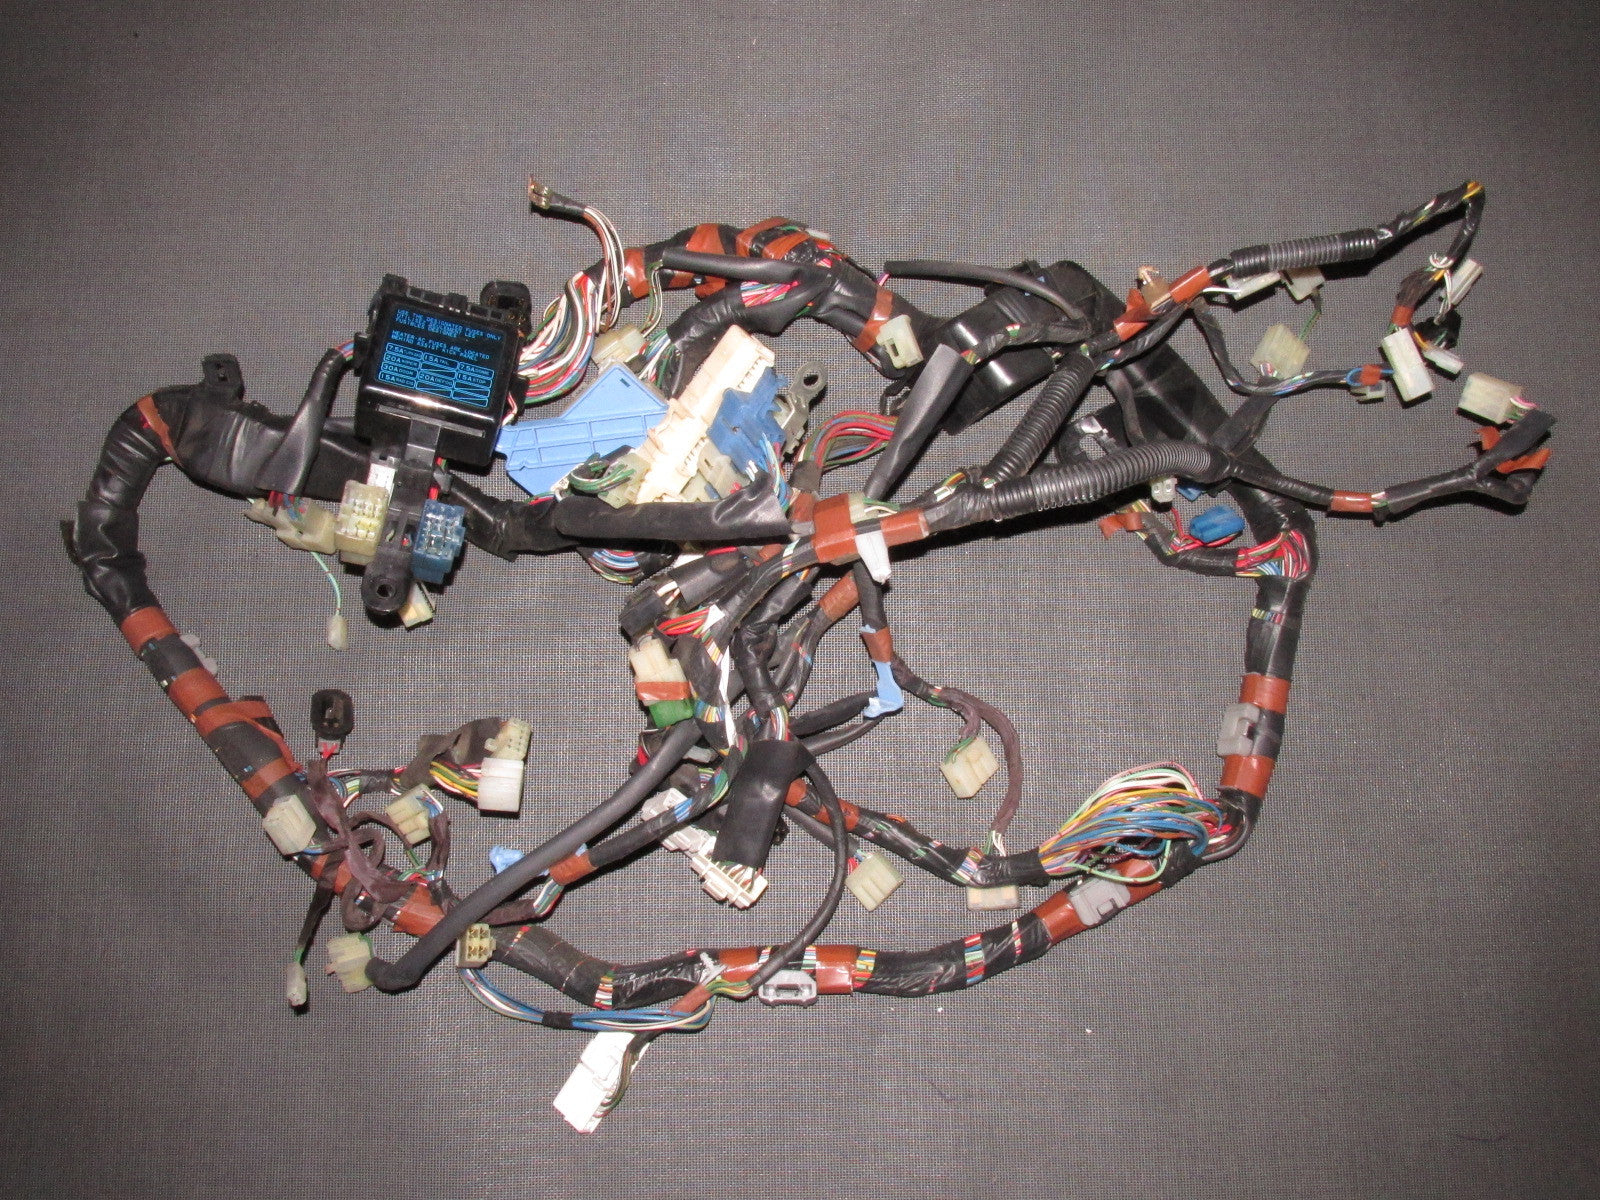 85 86 87 88 89 Toyota Mr2 Oem Interior Fuse Box Dash Wiring Harness  U2013 Autopartone Com